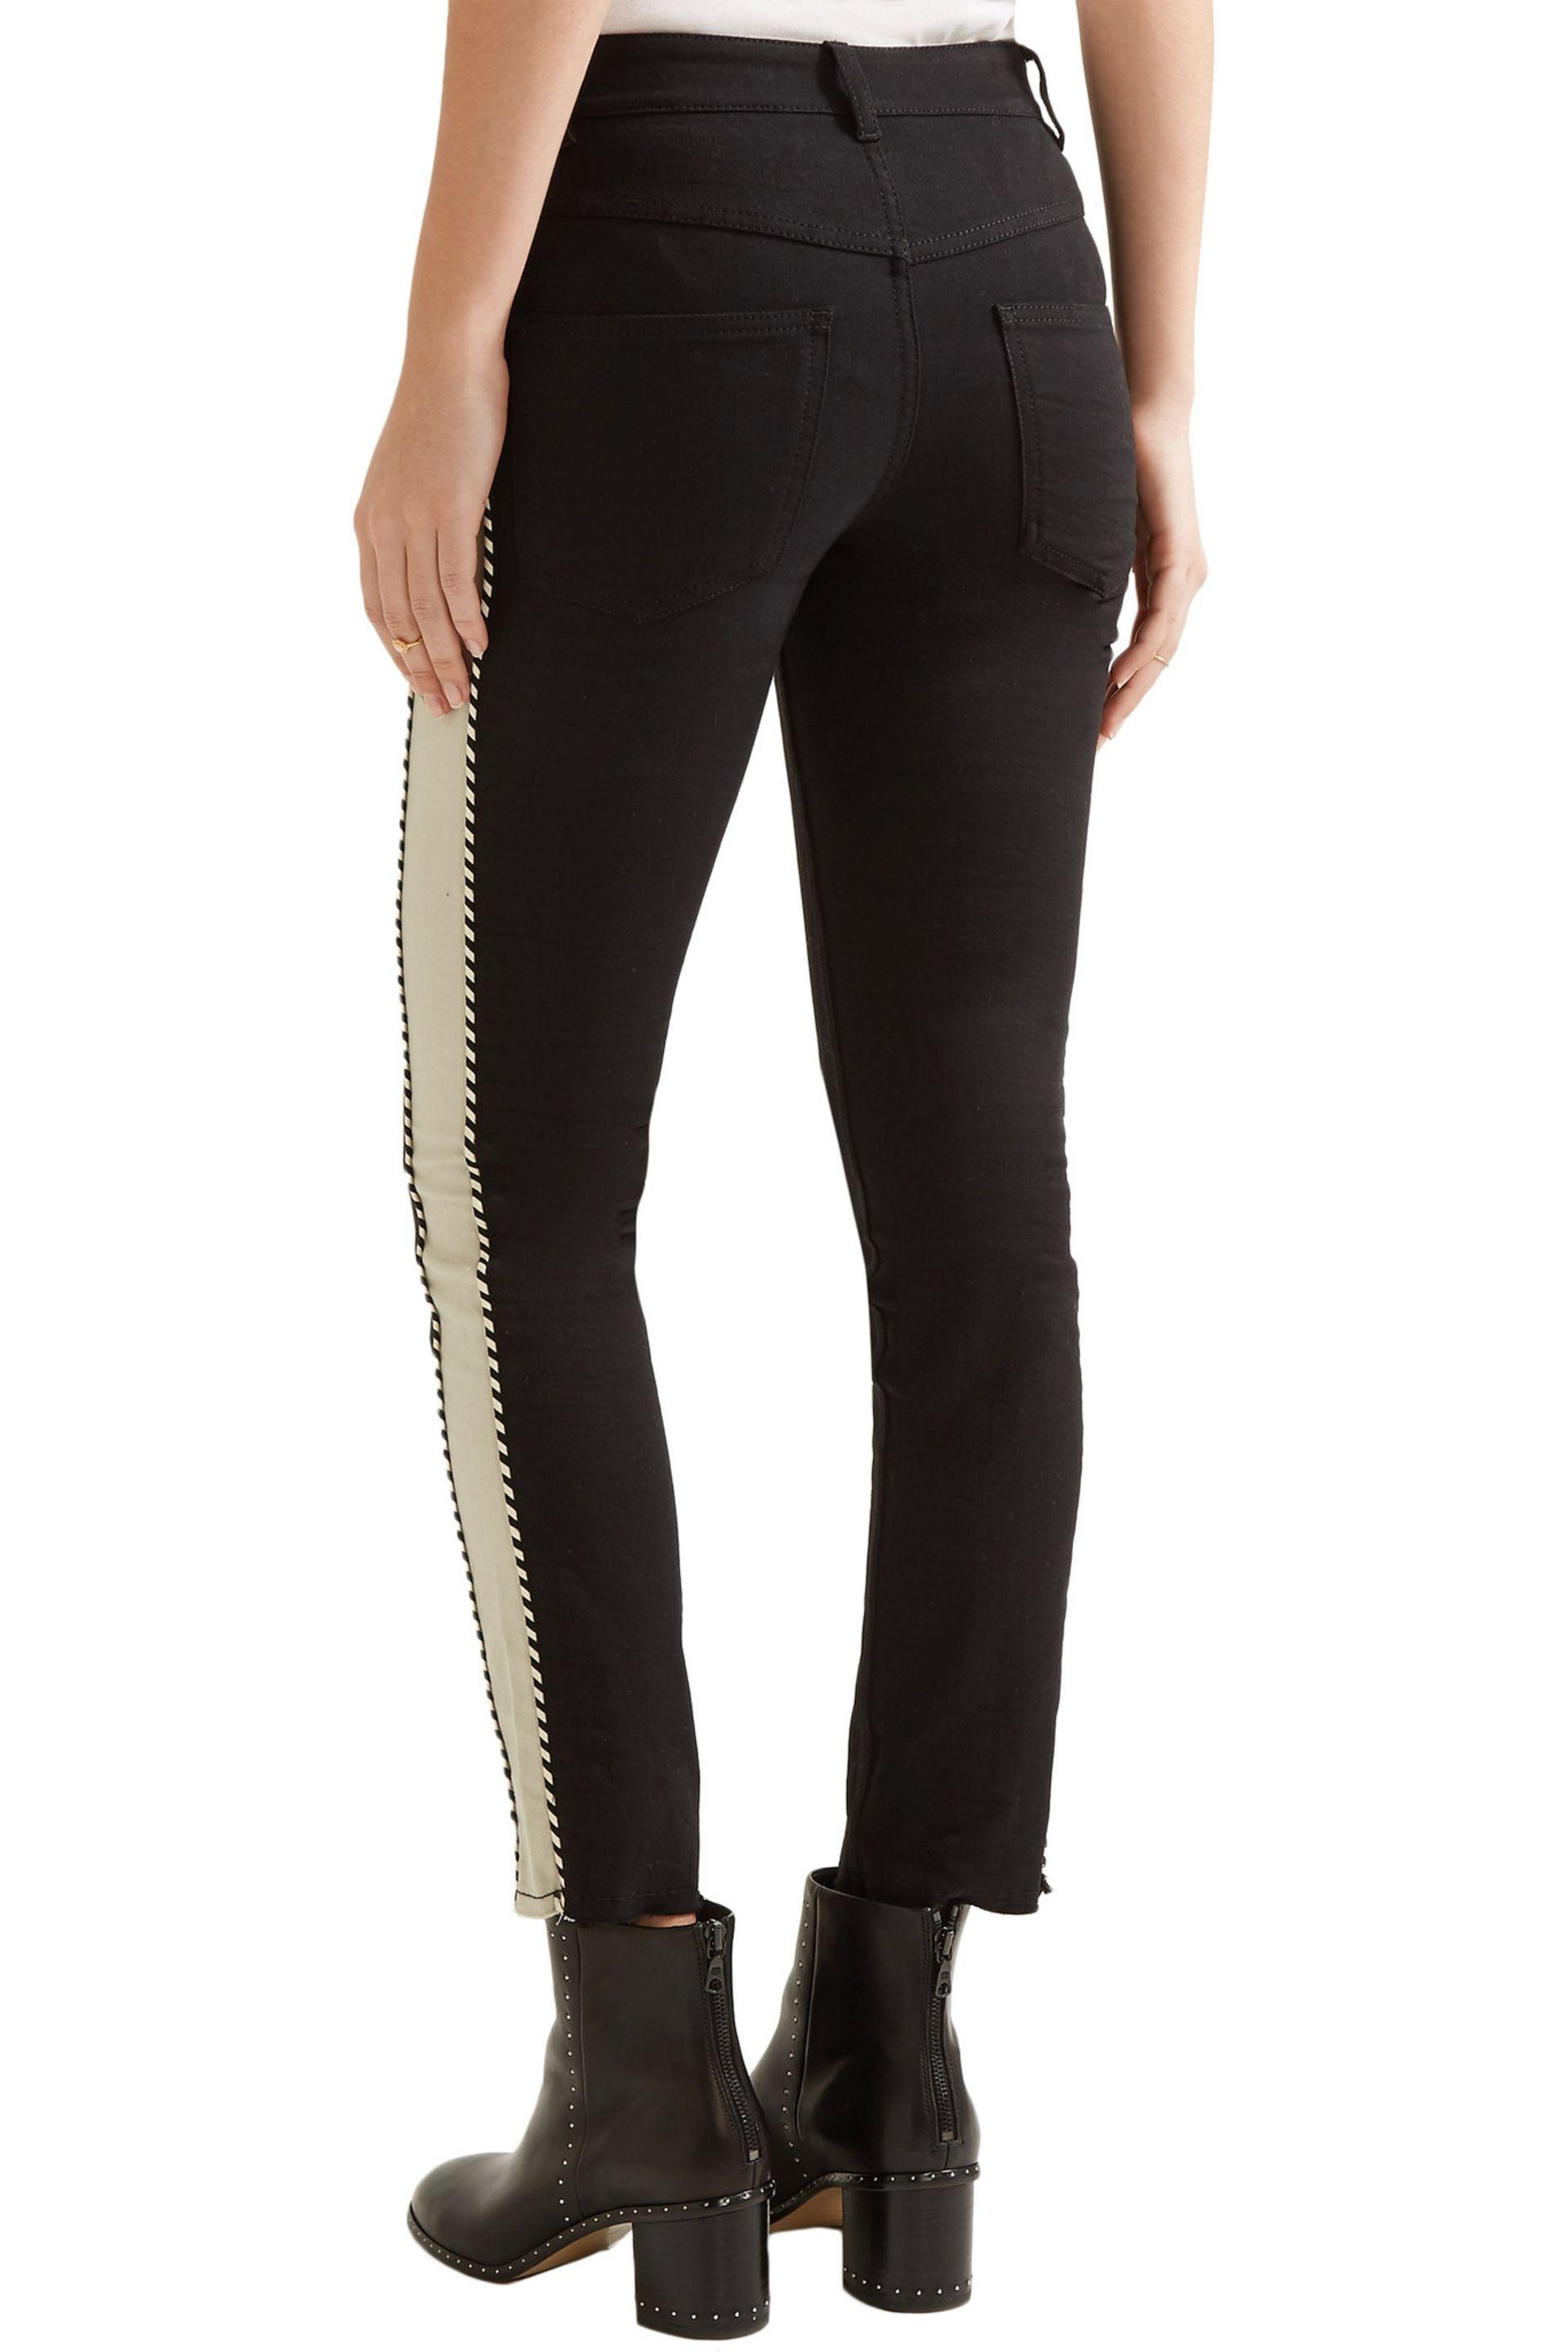 Étoile Isabel Marant Denim Haven Striped Mid-rise Straight-leg Jeans in Black